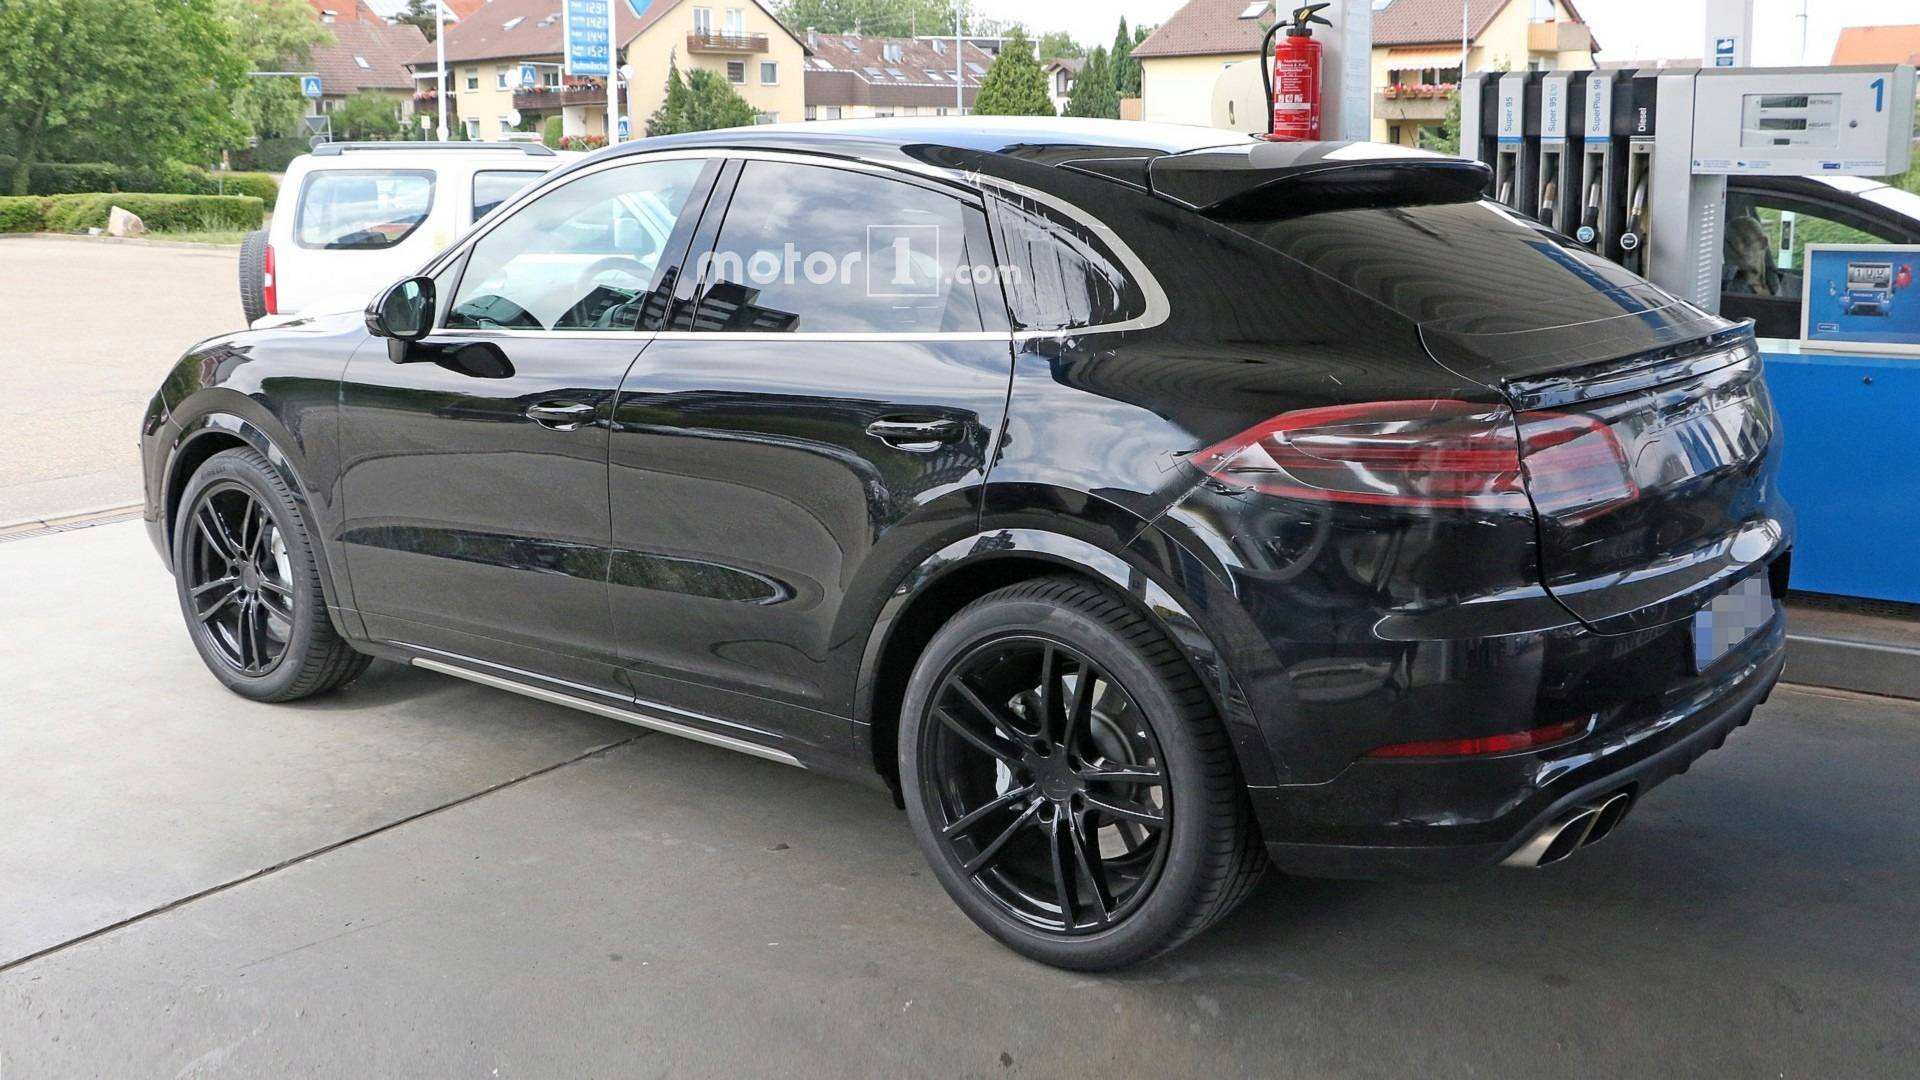 89 All New 2020 Porsche Cayenne Turbo S Review by 2020 Porsche Cayenne Turbo S